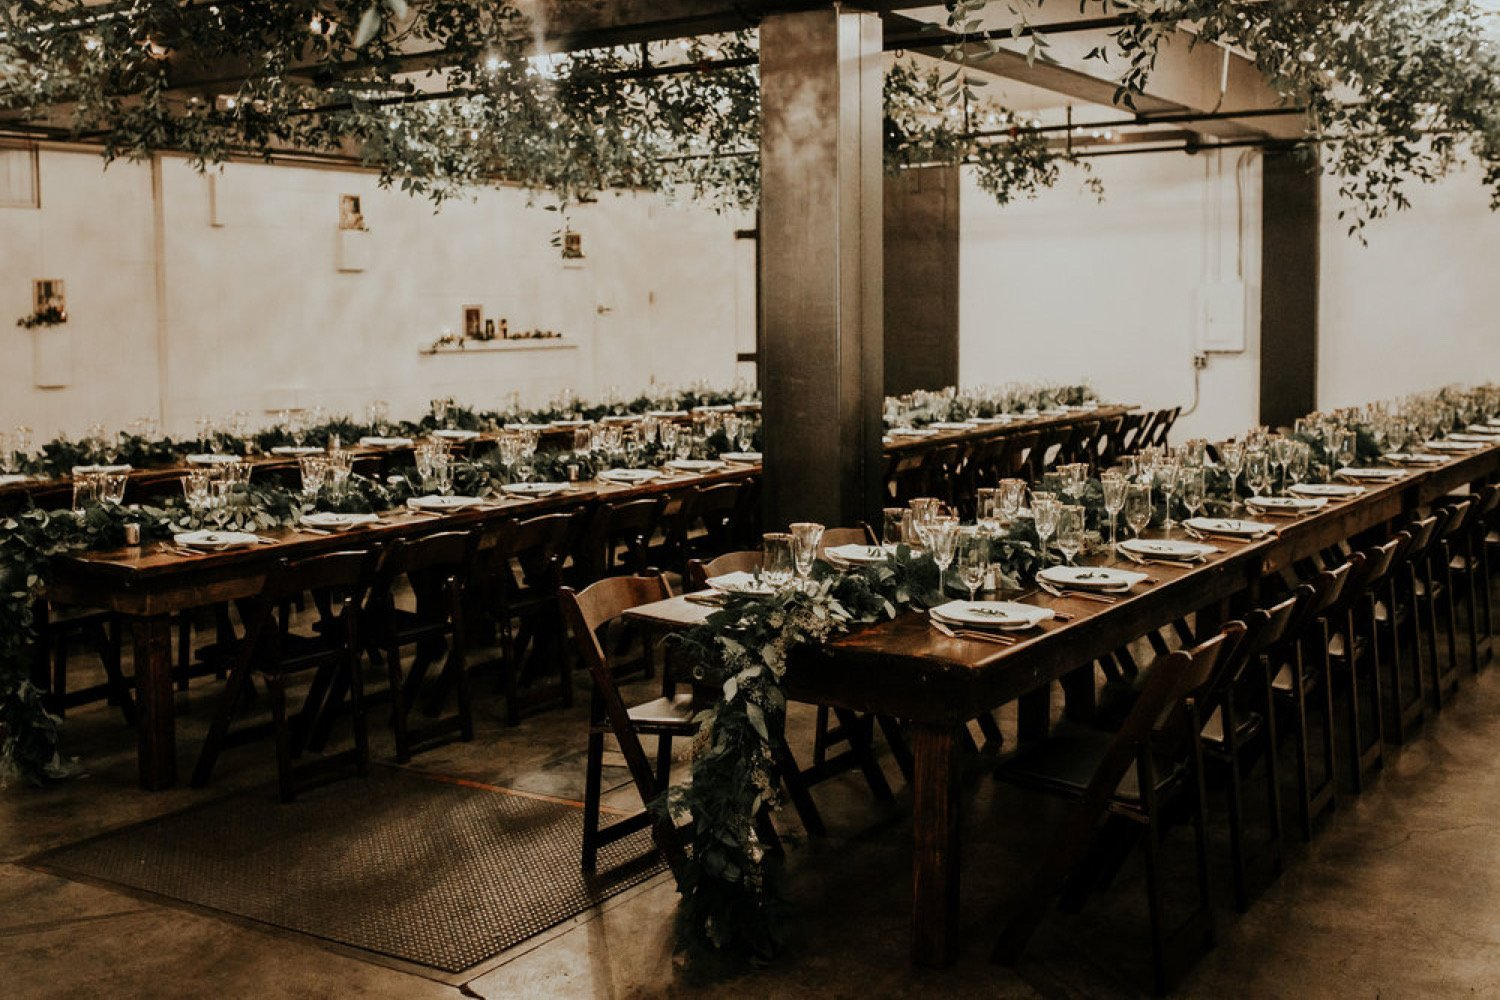 Long farm tables at a wedding reception with long greenery garlands